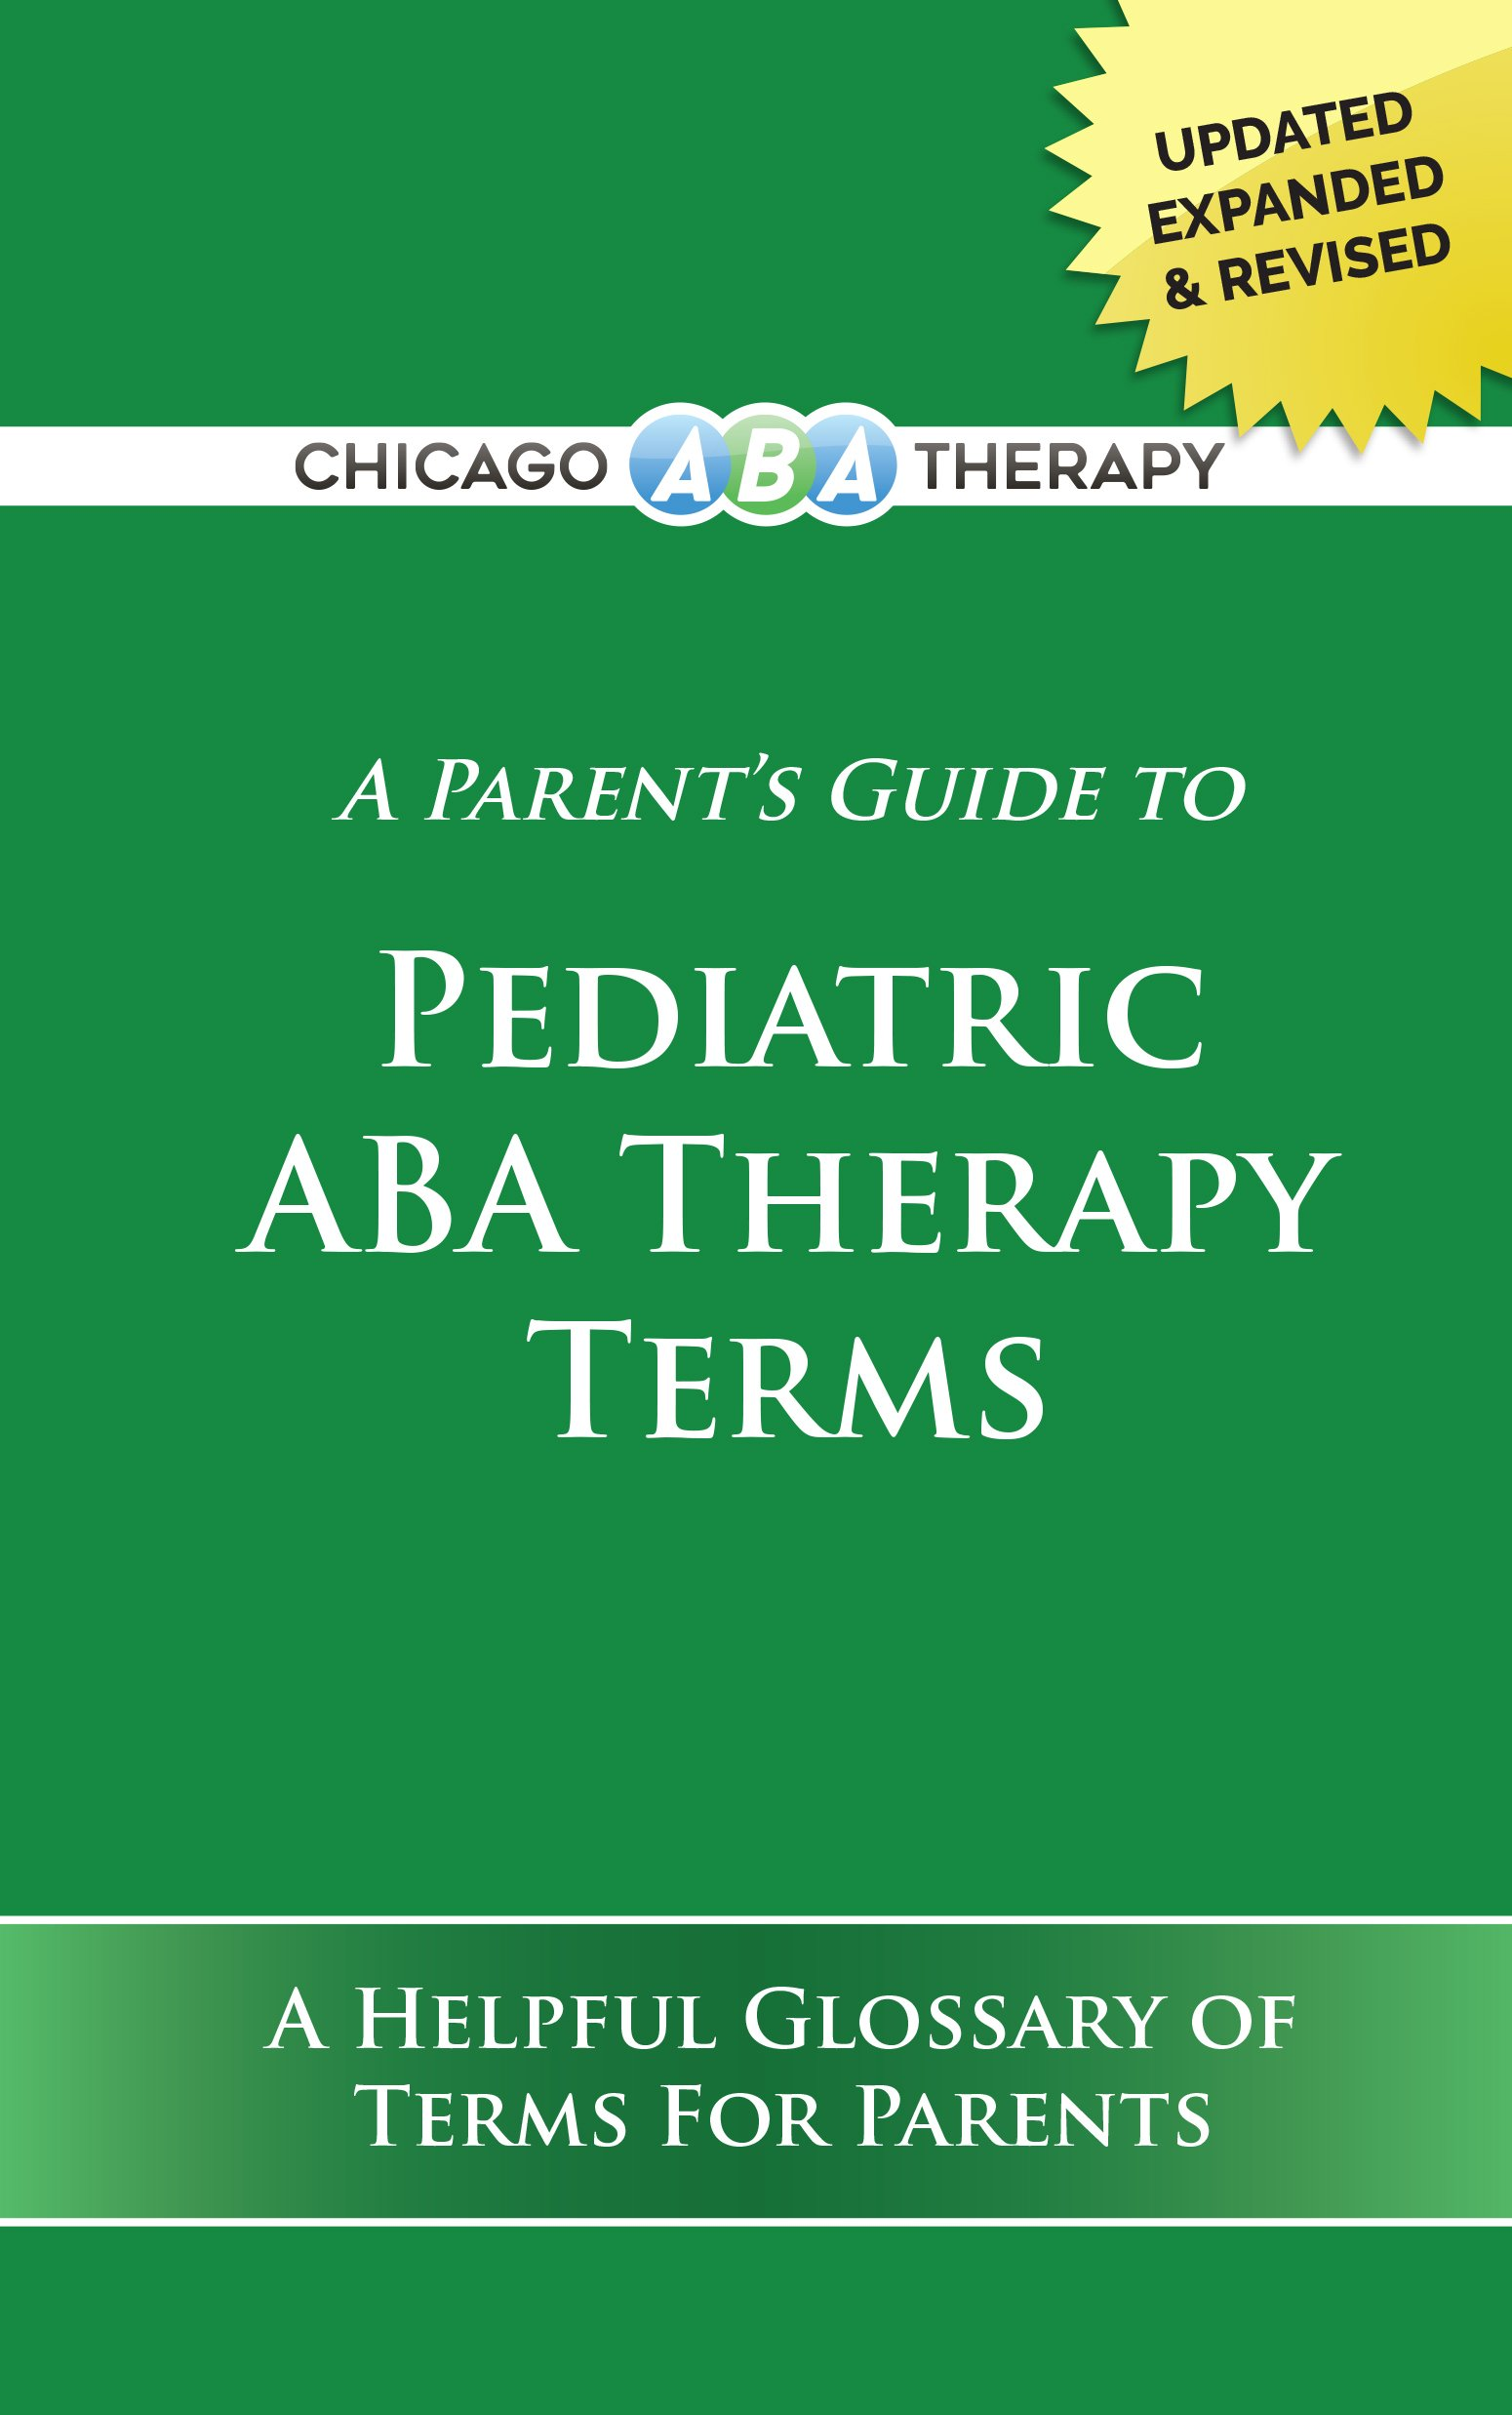 Glossary Of Terms To Help Parents >> A Parent S Guide To Pediatric Aba Therapy Terms A Helpful Glossary